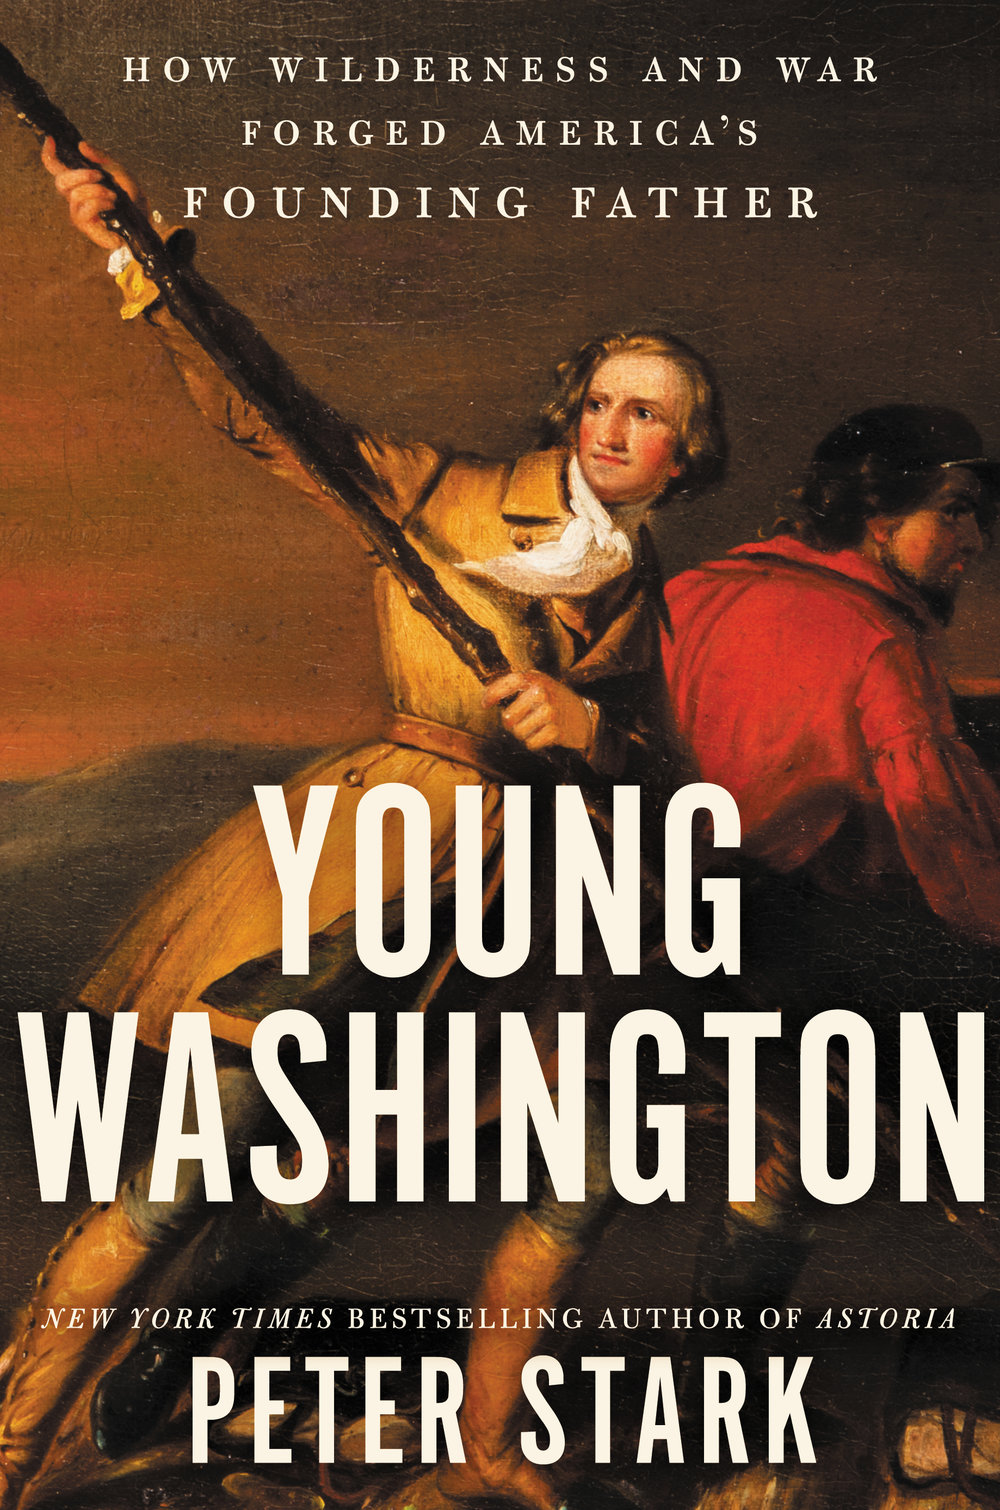 YoungWashington hc c.JPG